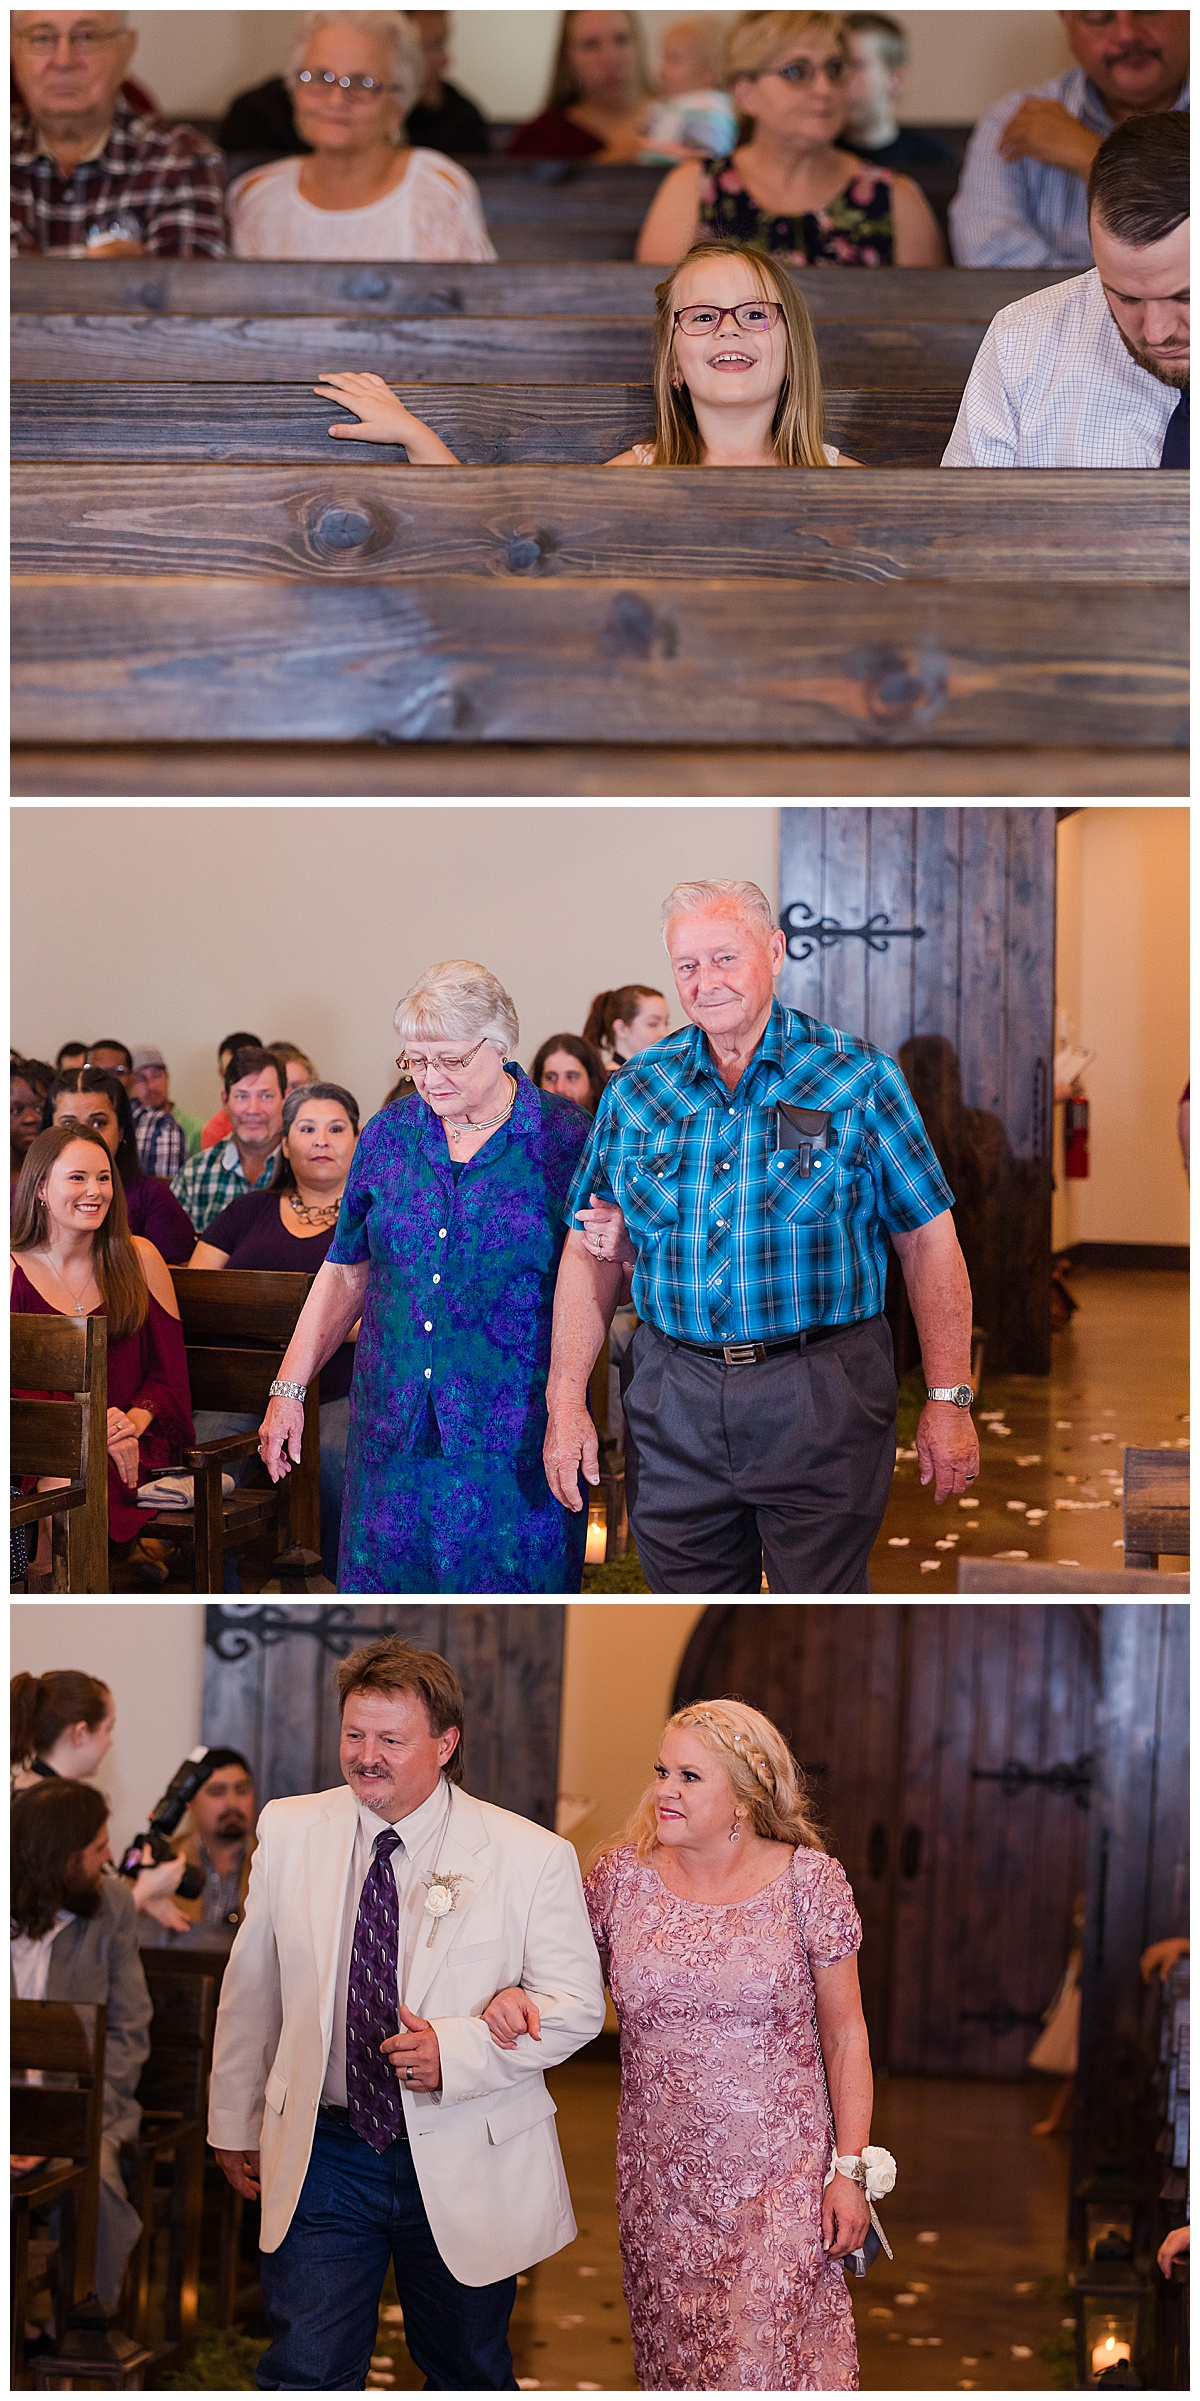 Texas-Magnolia-Bells-Rustic-Wedding-Carly-Barton-Photography_0076.jpg